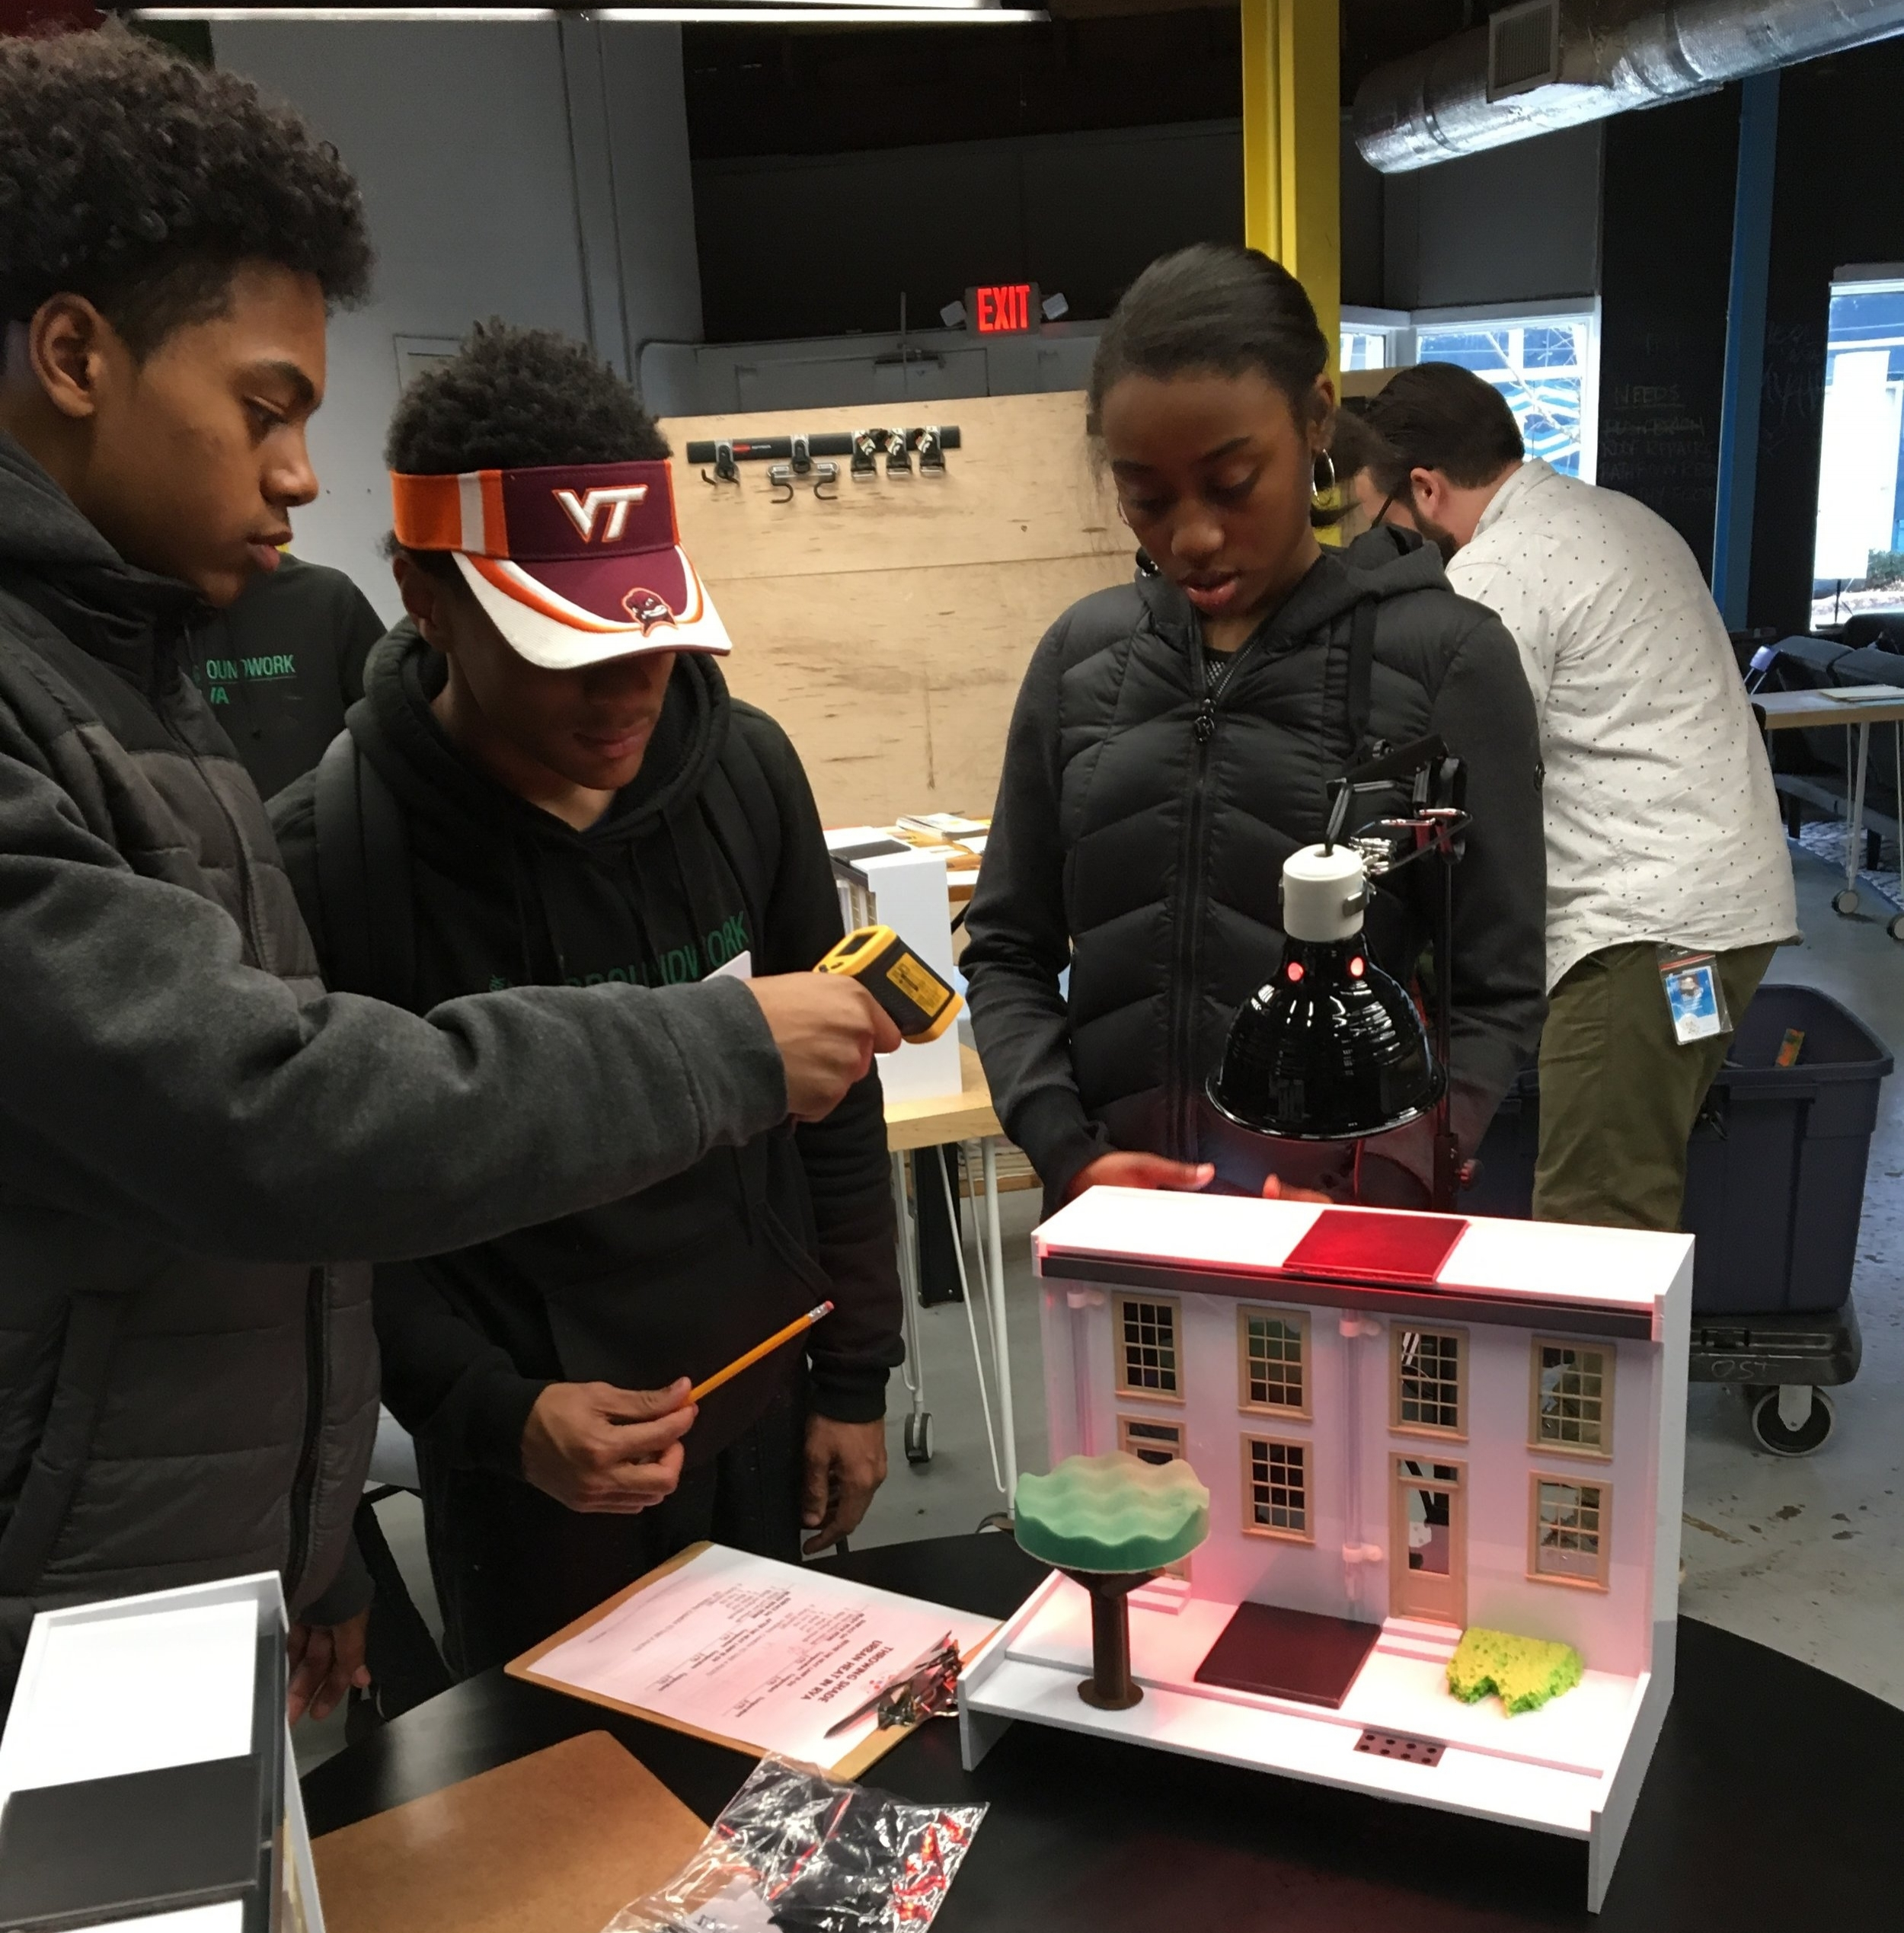 Hands-on science - GroundworkRVA Green Team students explore the drivers of urban heat islands (paved, dark surfaces) and their solutions (green infrastructure like native plants) using infrared cameras and thermometers.